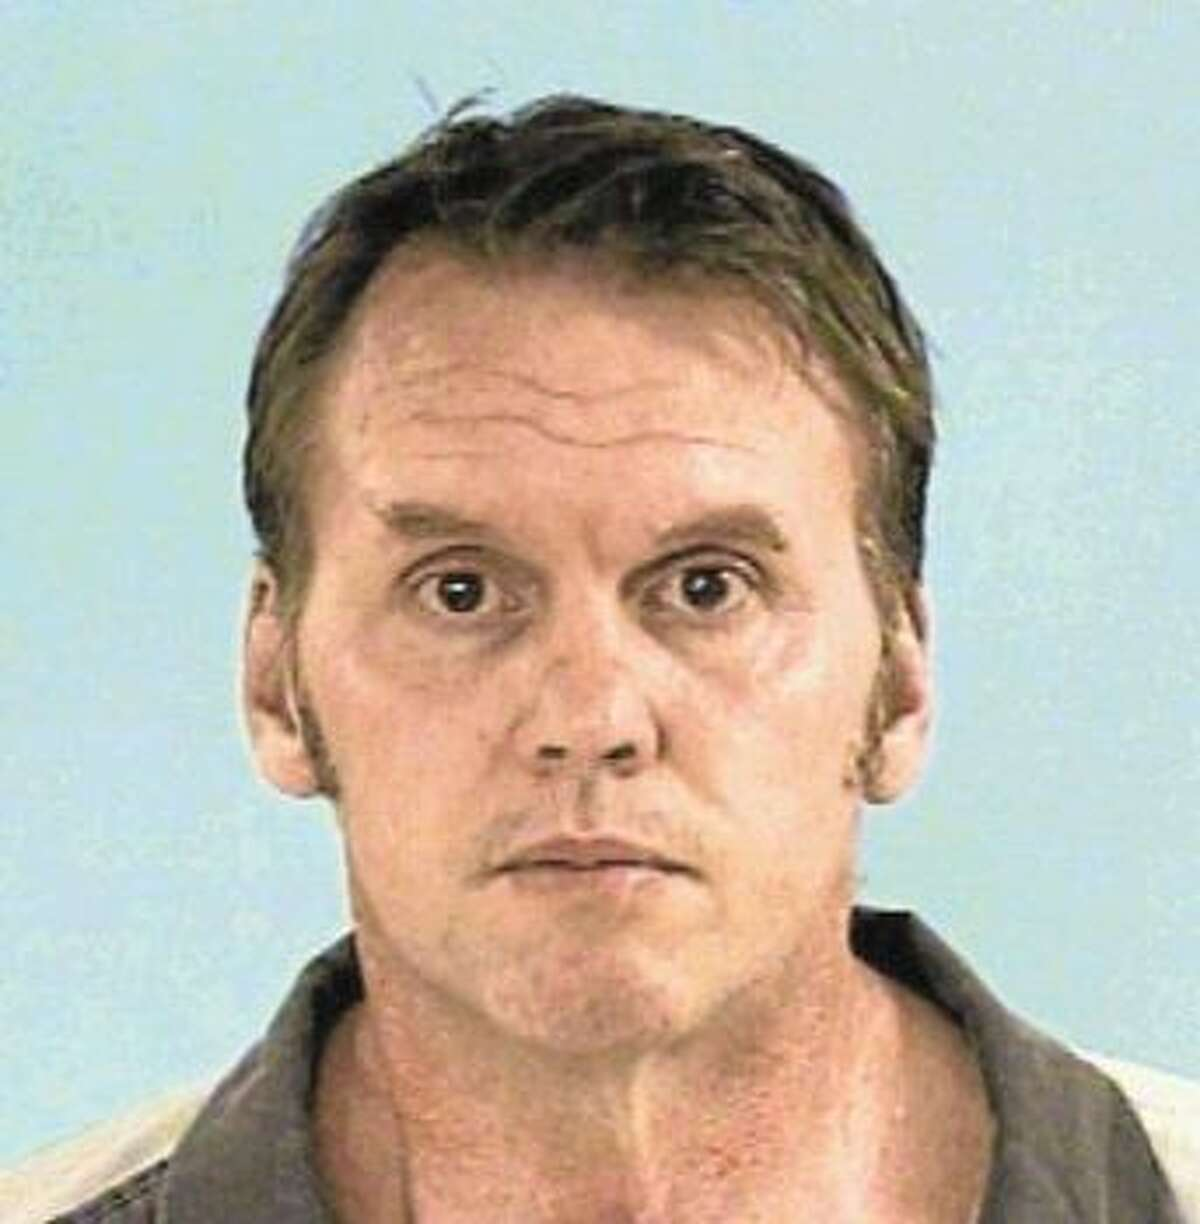 A state district judge dismissed intoxicated manslaughter charges this week against a Ed Blackwell who was found incompetent to stand trial in the killing of three people in a head-on crash after he consumed 22 beers and drove the wrong way on Interstate 45.